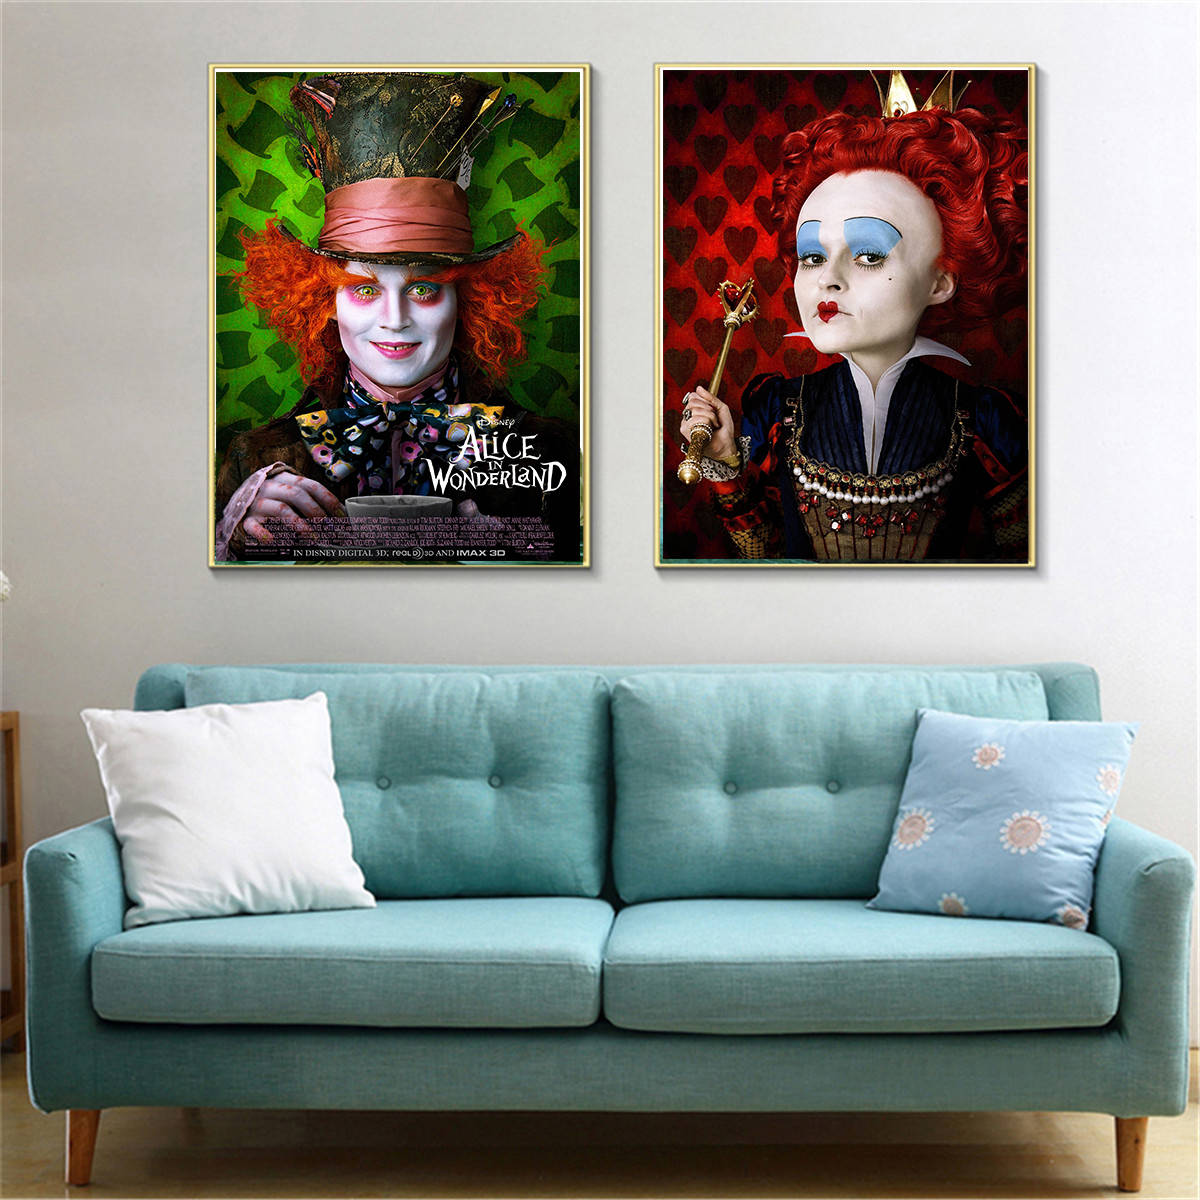 wall art craft canvas pianting poster for movie quadro Alice in Wonderland wall painting for bed room kid room bar pub